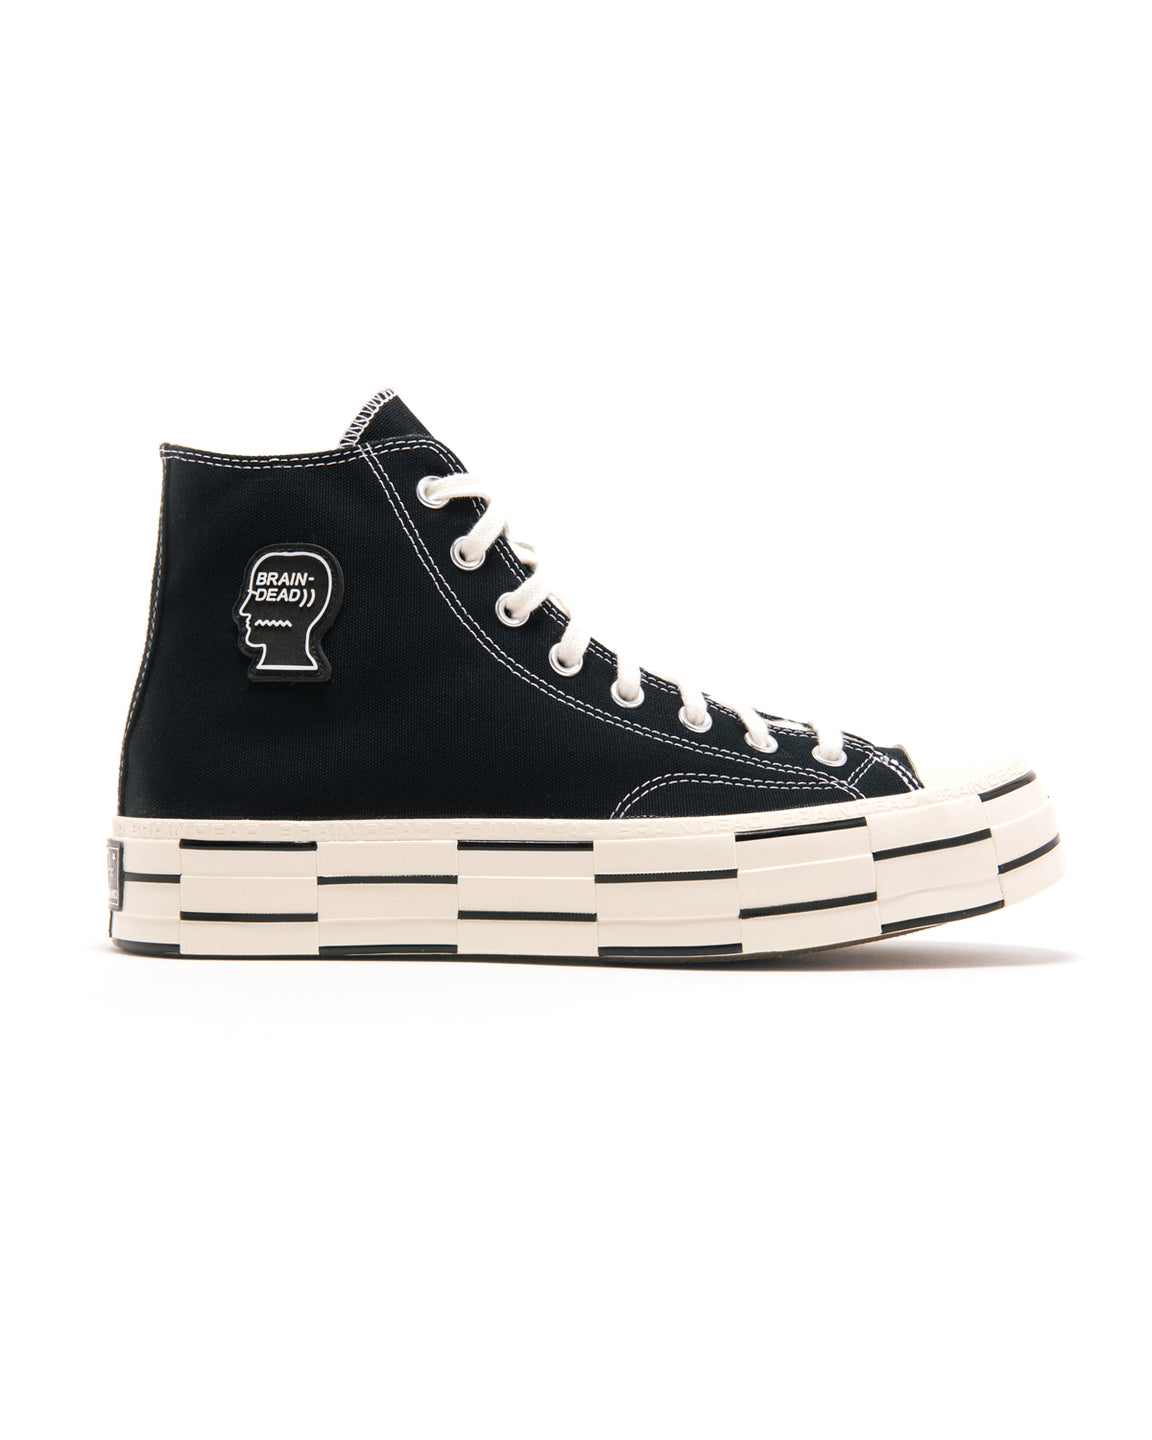 Converse X Brain Dead CT 70 - Black